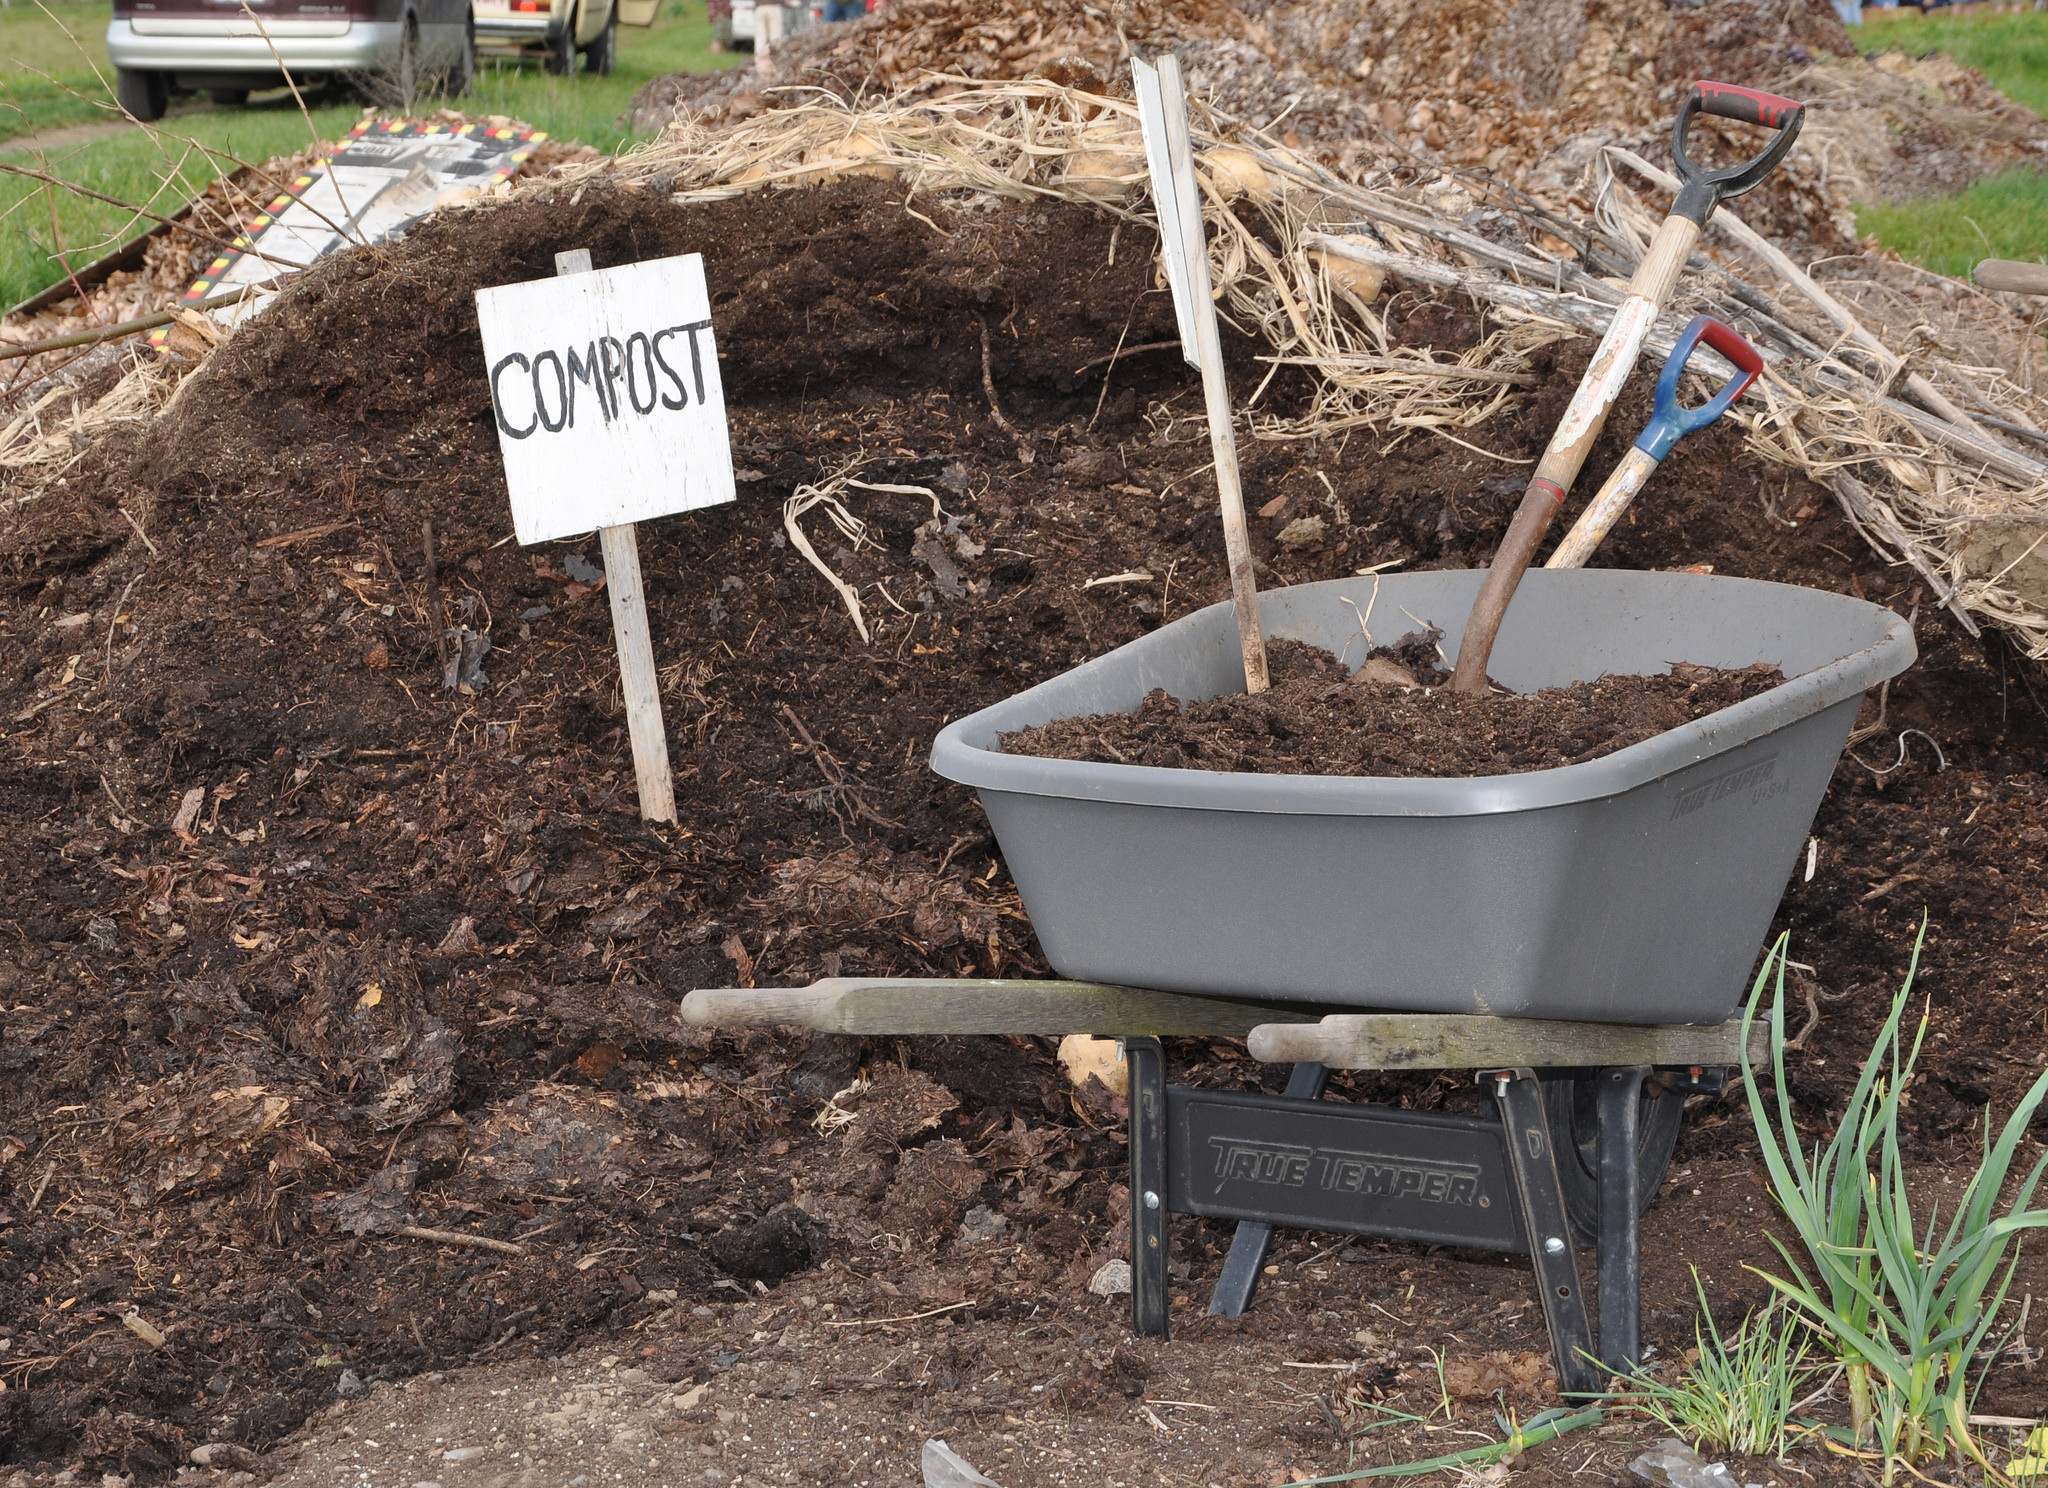 Compost; photo courtesy of Flickr cc/Oregon State University